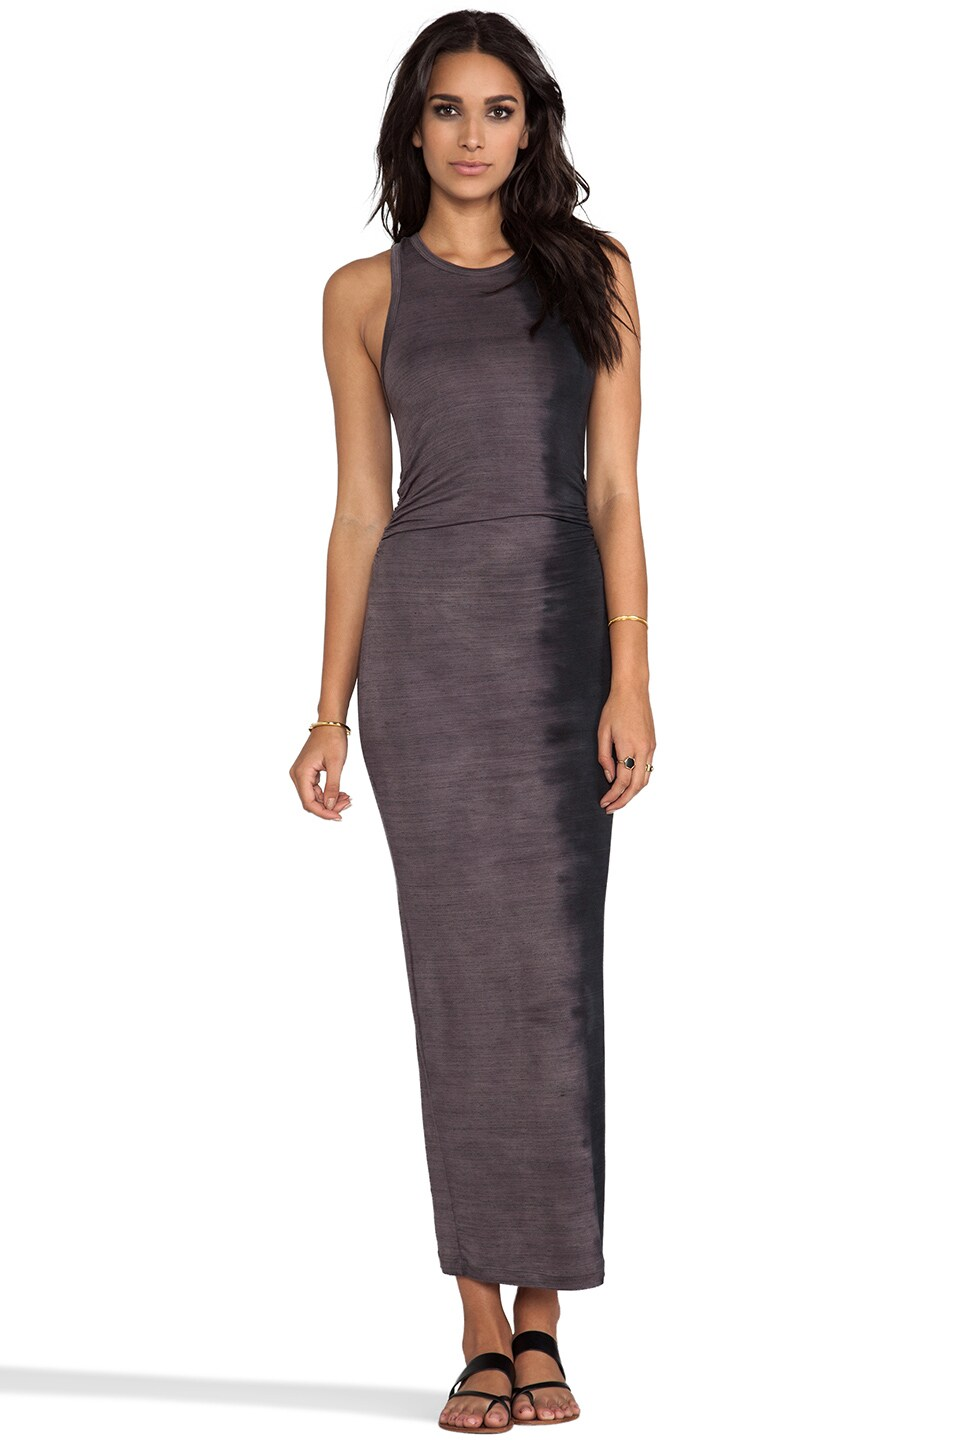 Kain Space Dye Considine Dress in Dark Dip Dye